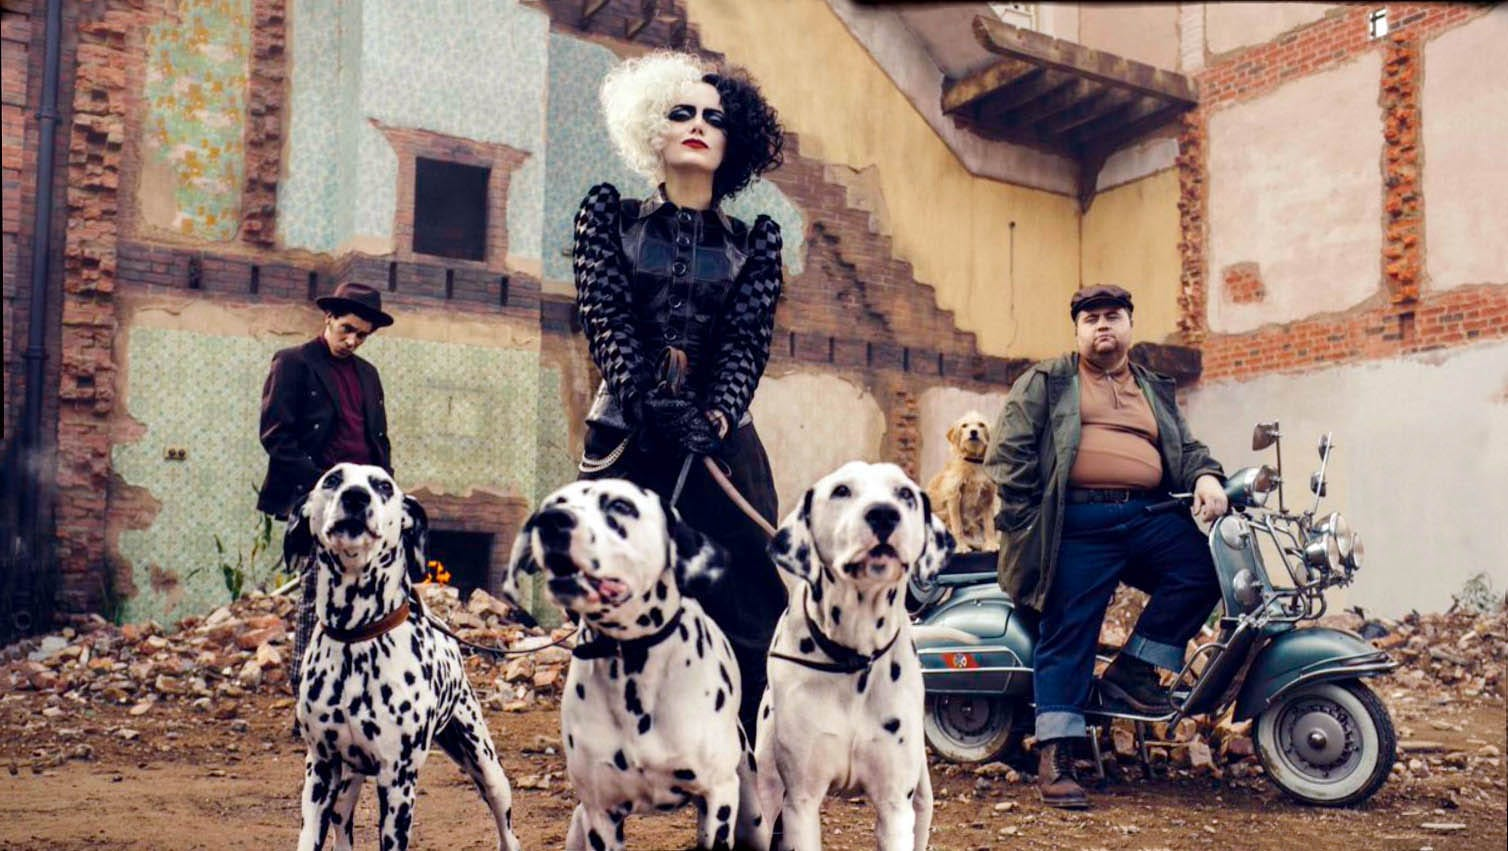 Disney's Villain Cruella's Transformation Can be Seen in New Promotional Clip